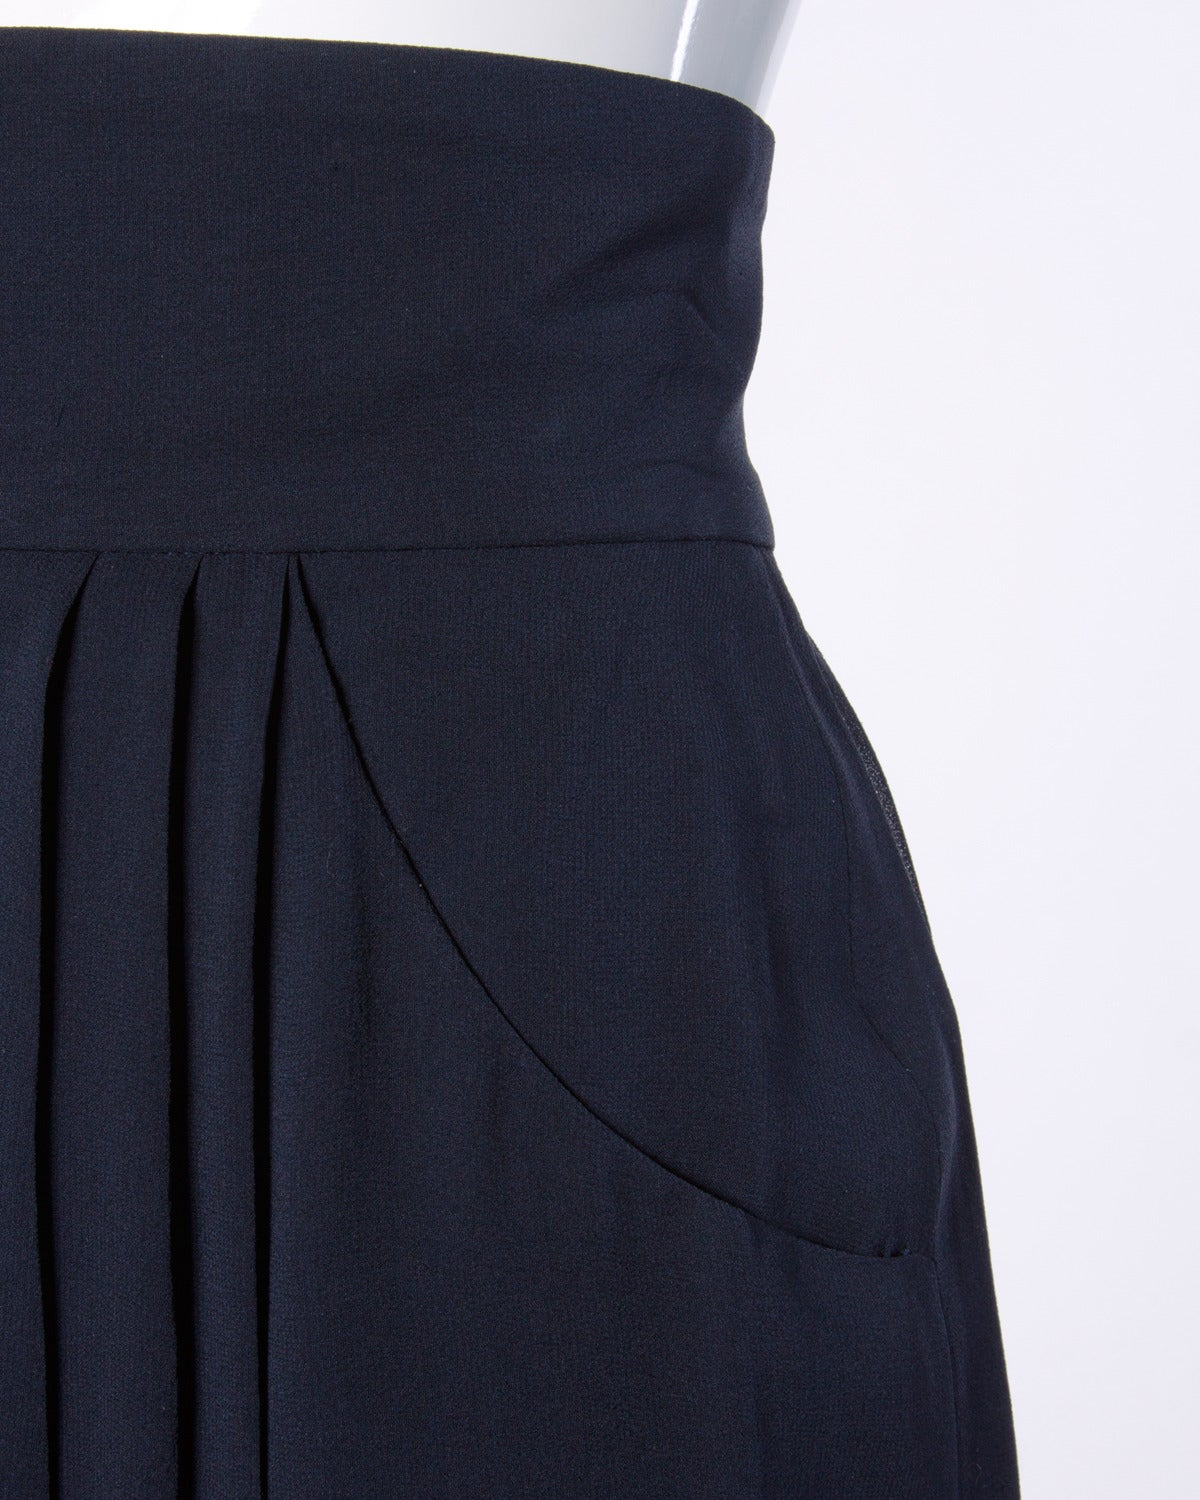 Chanel Vintage Navy Blue Pleated Silk Chiffon Skirt 3